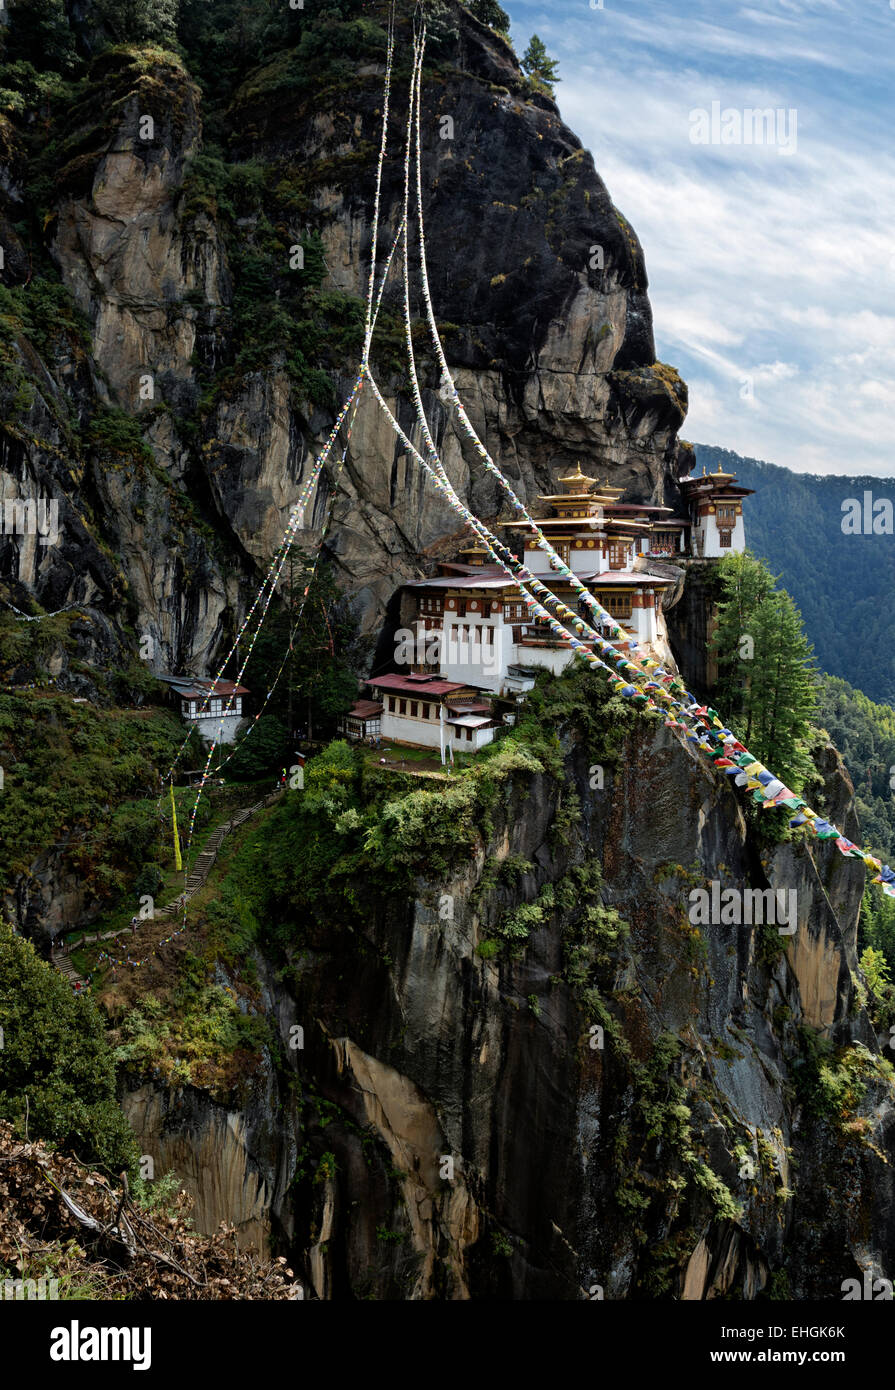 BHUTAN - Prayer flags at Taktshang Goemba, (Tiger's Nest Monastery), perched on the side of a cliff high above - Stock Image